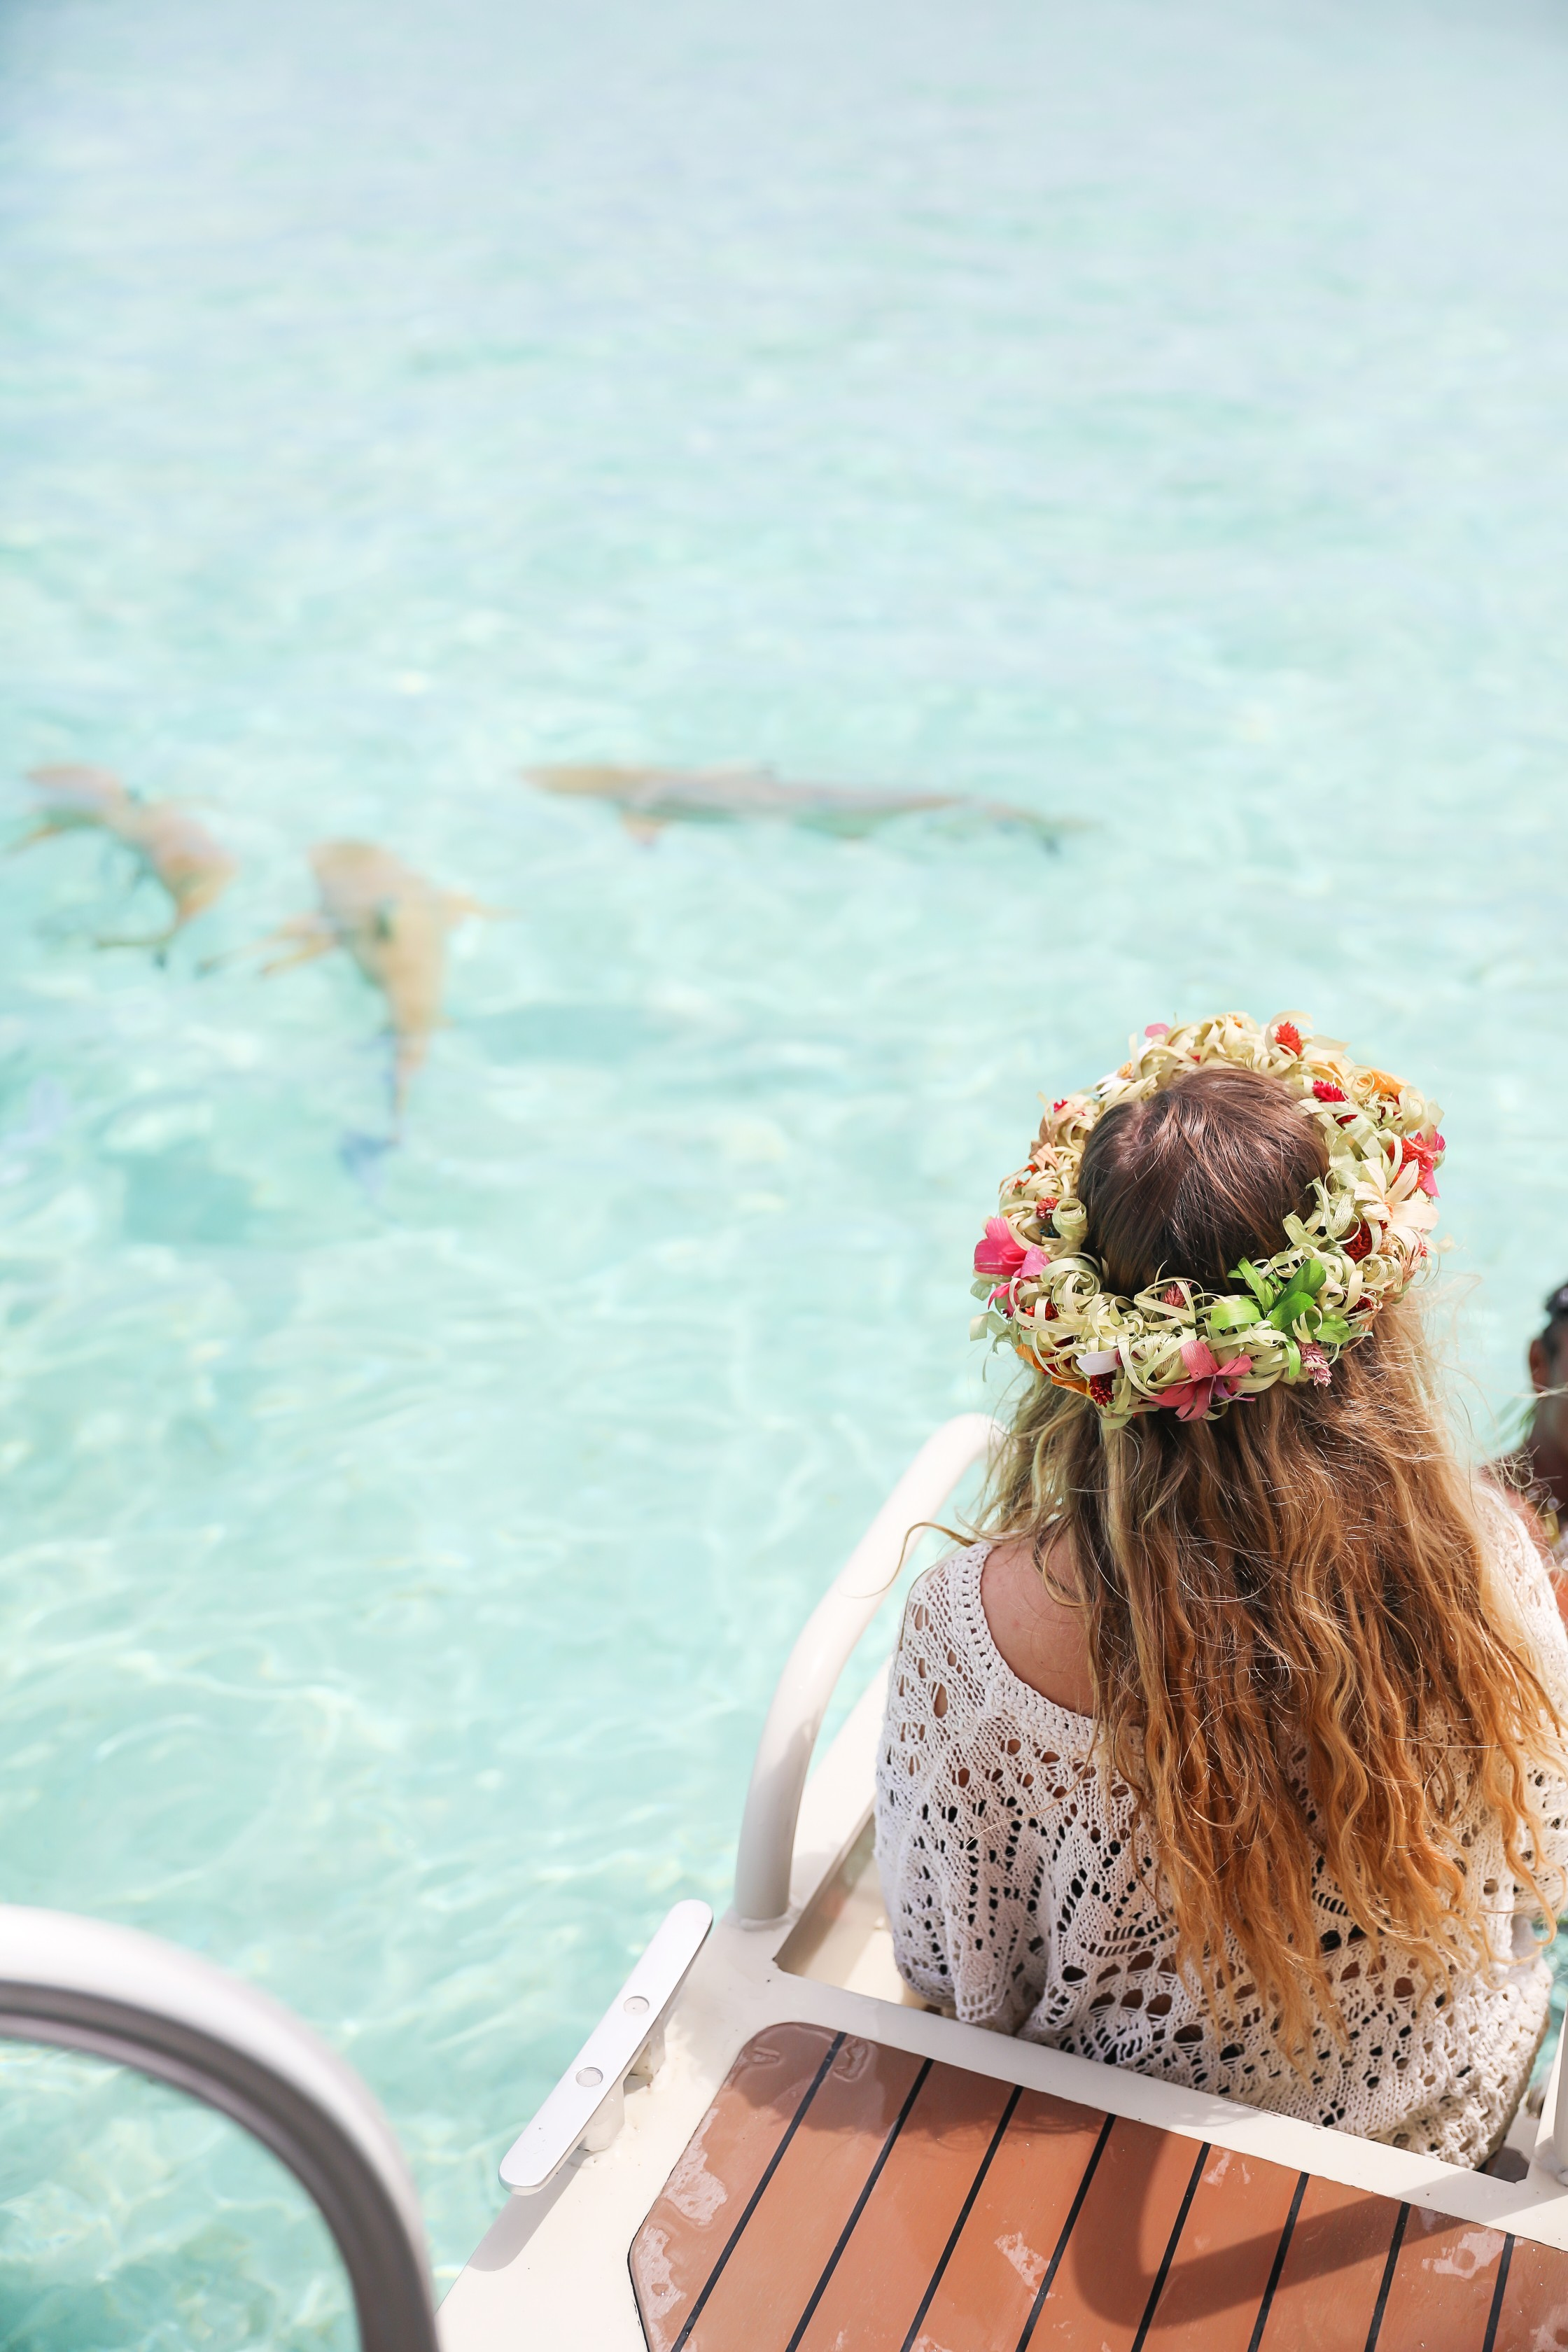 Swimming with sharks in Bora Bora, French Polynesia! I wore the prettiest Bora Bora flower crown by the ocean! The water was so clear and blue! Details on travel blog daily dose of charm by travel blogger and fashion blogger lauren lindmark